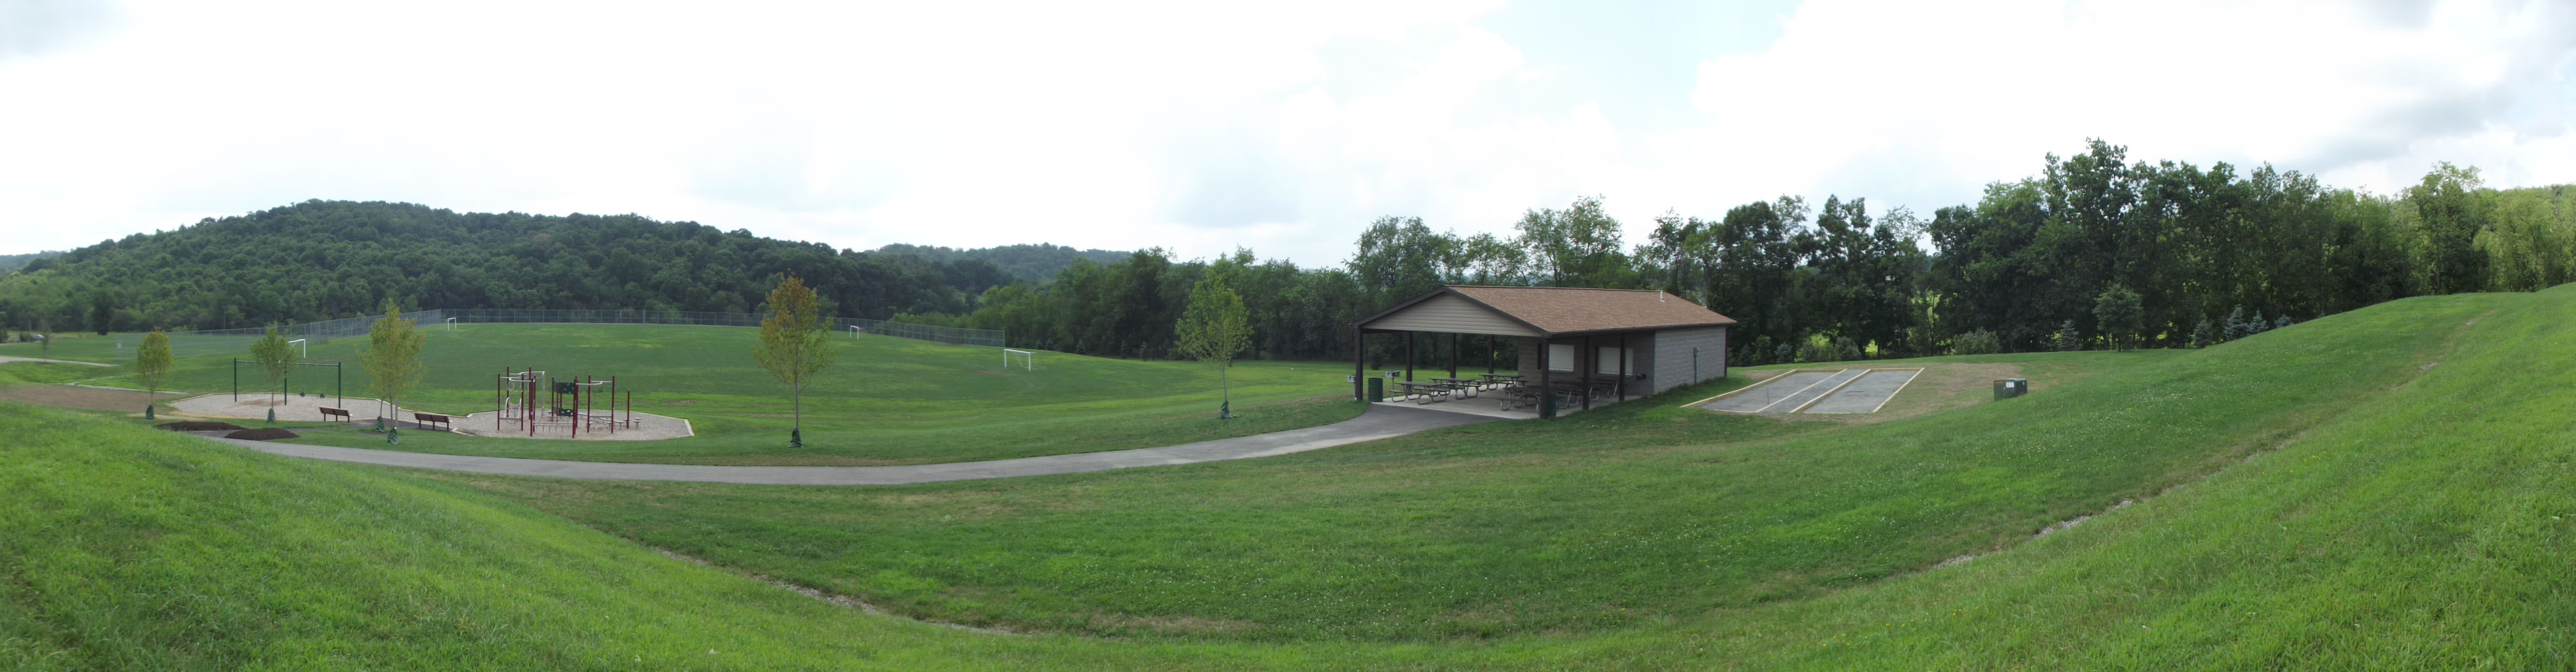 Leftwich pavilion and soccer fields